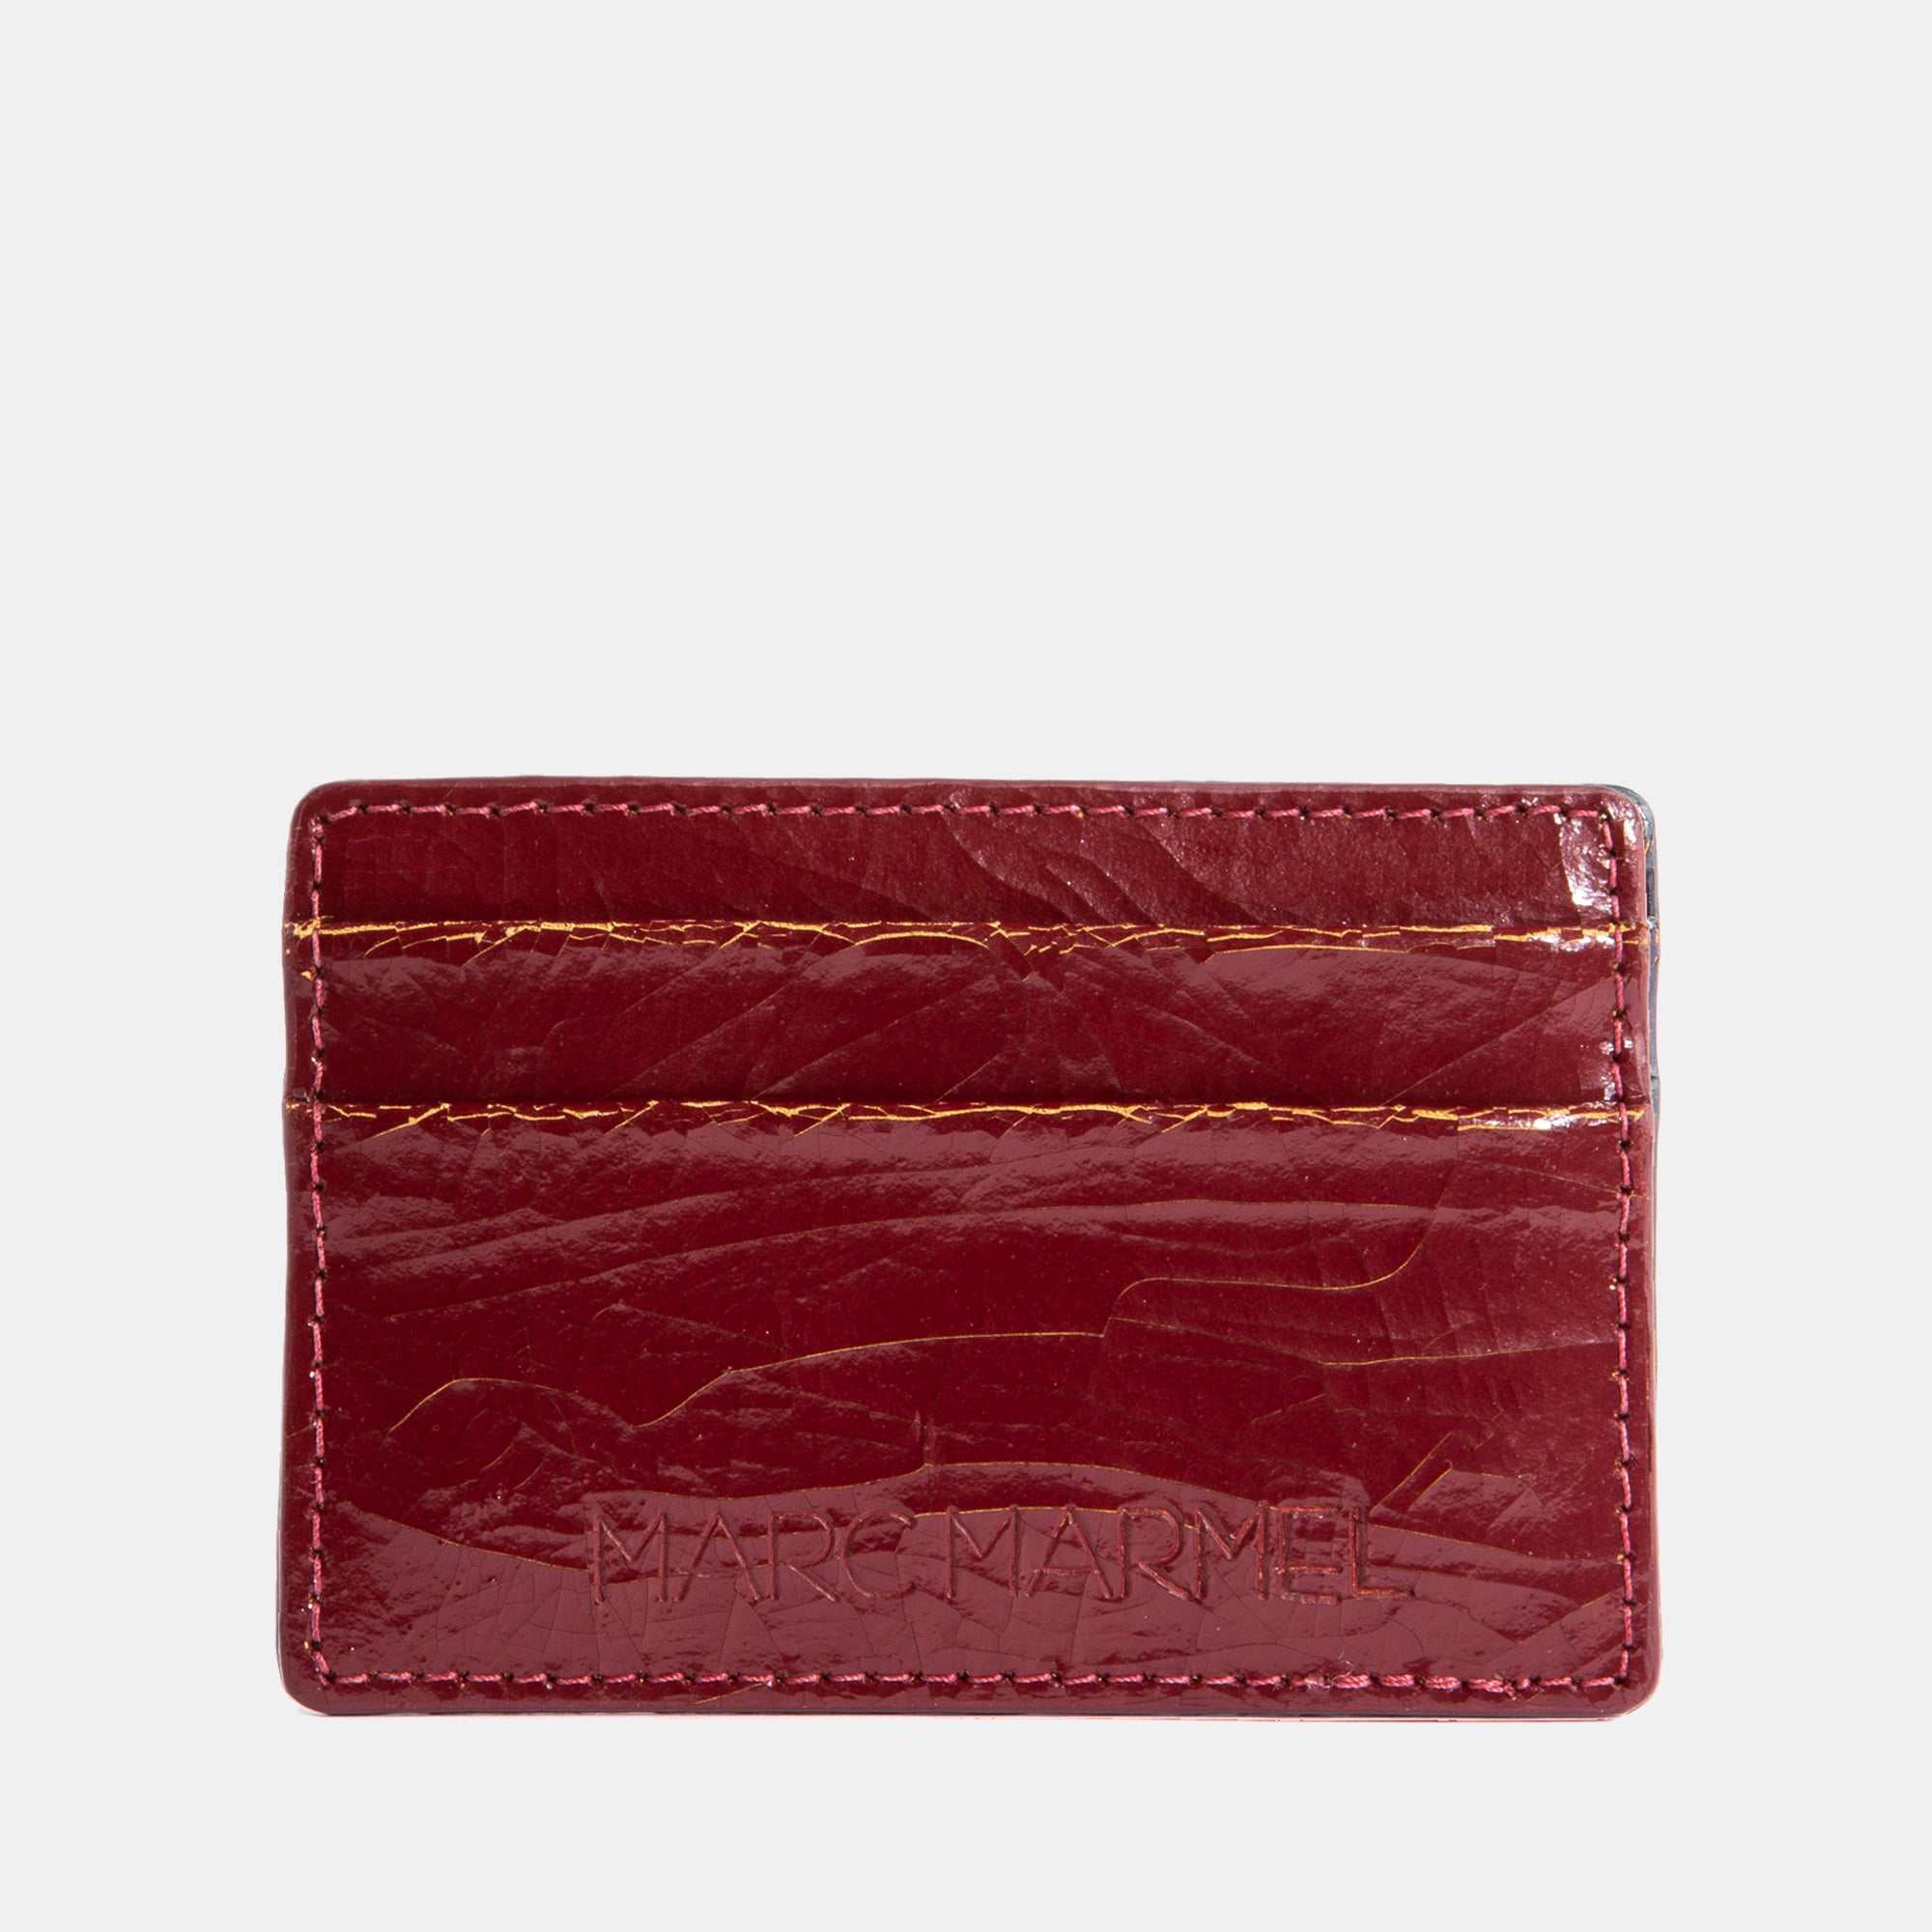 Luxury leather sustainable silk card sleeve